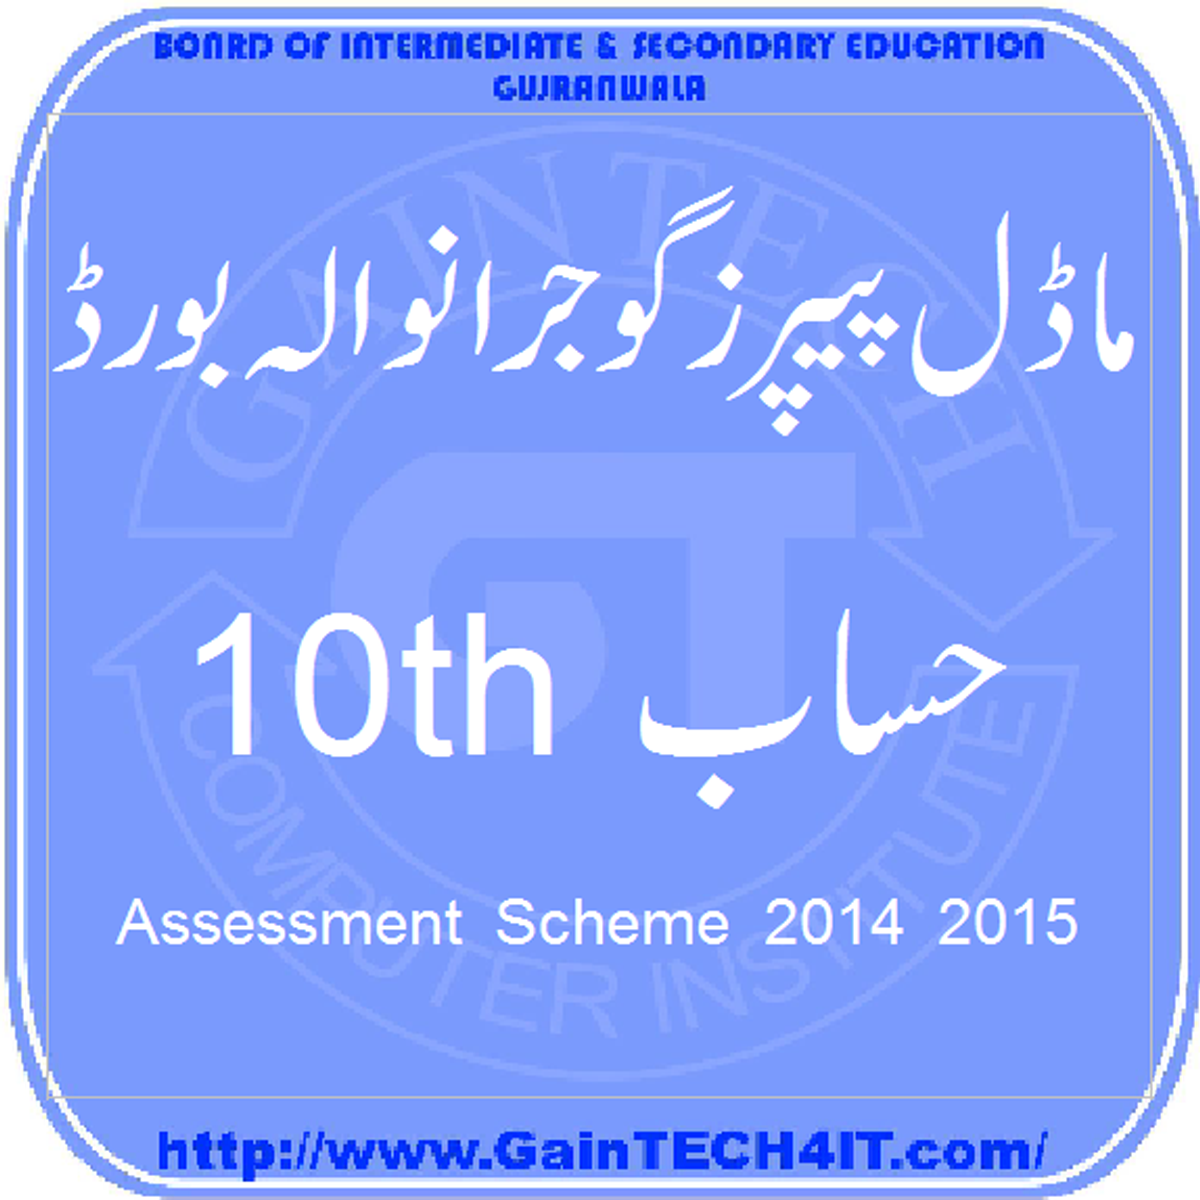 Assessment scheme (Math) 9th 10th class 2014 2015 - GainTECH4IT.com